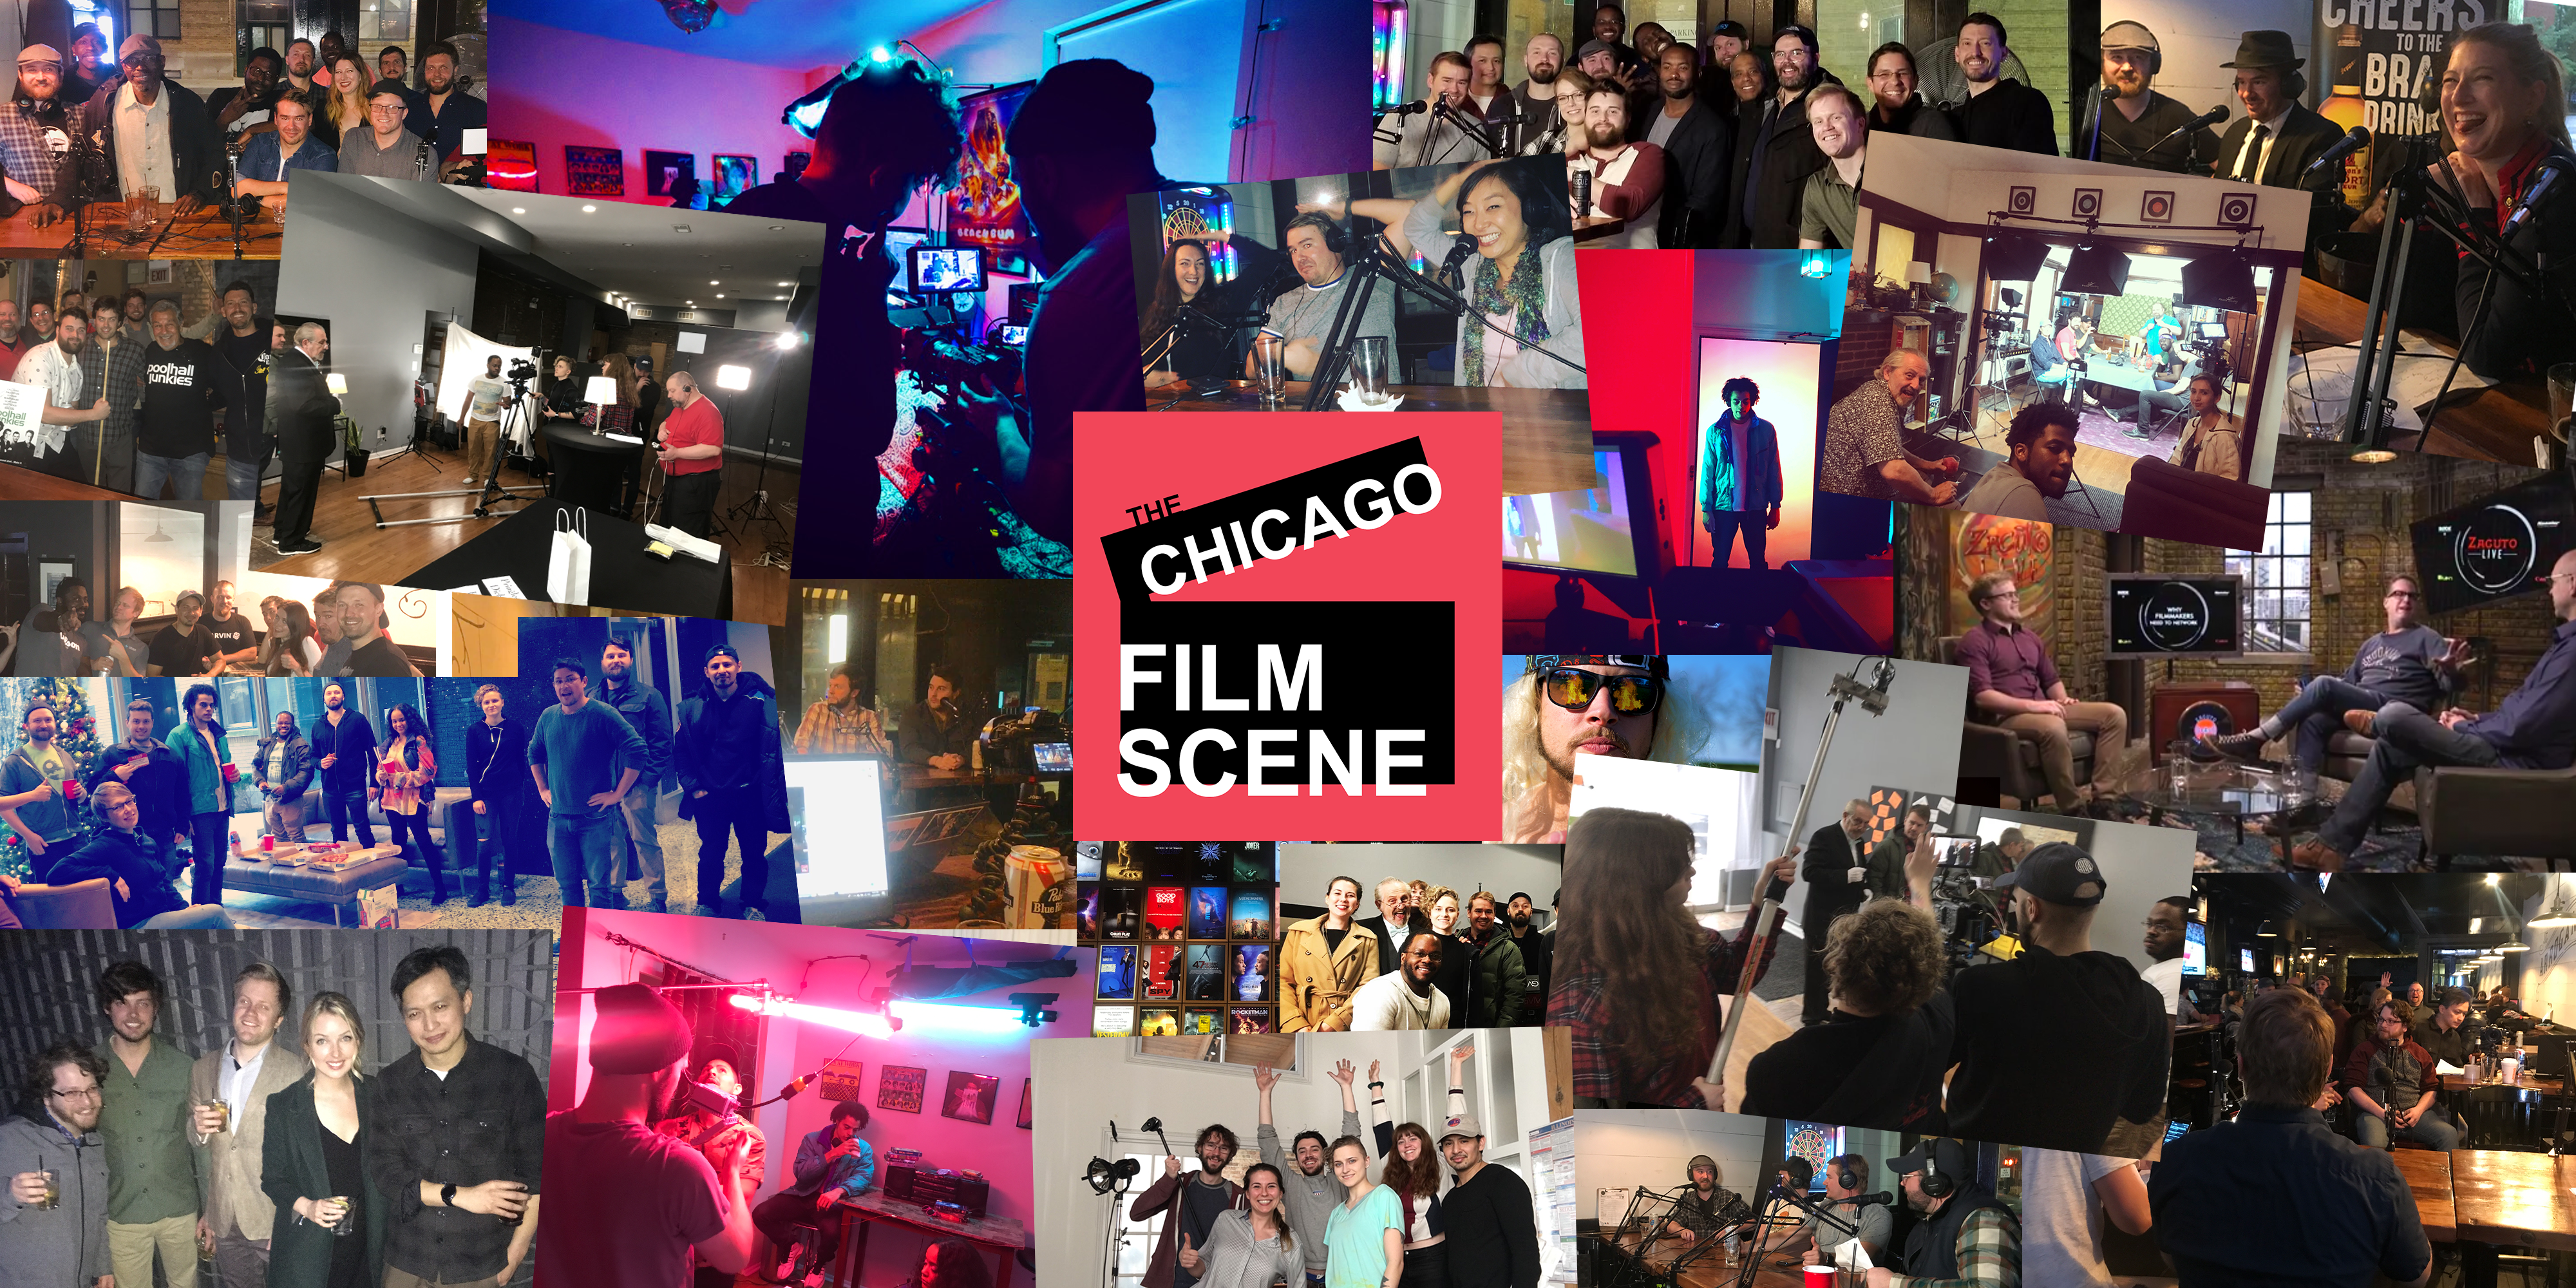 Chicago Film Scene Cover Photo